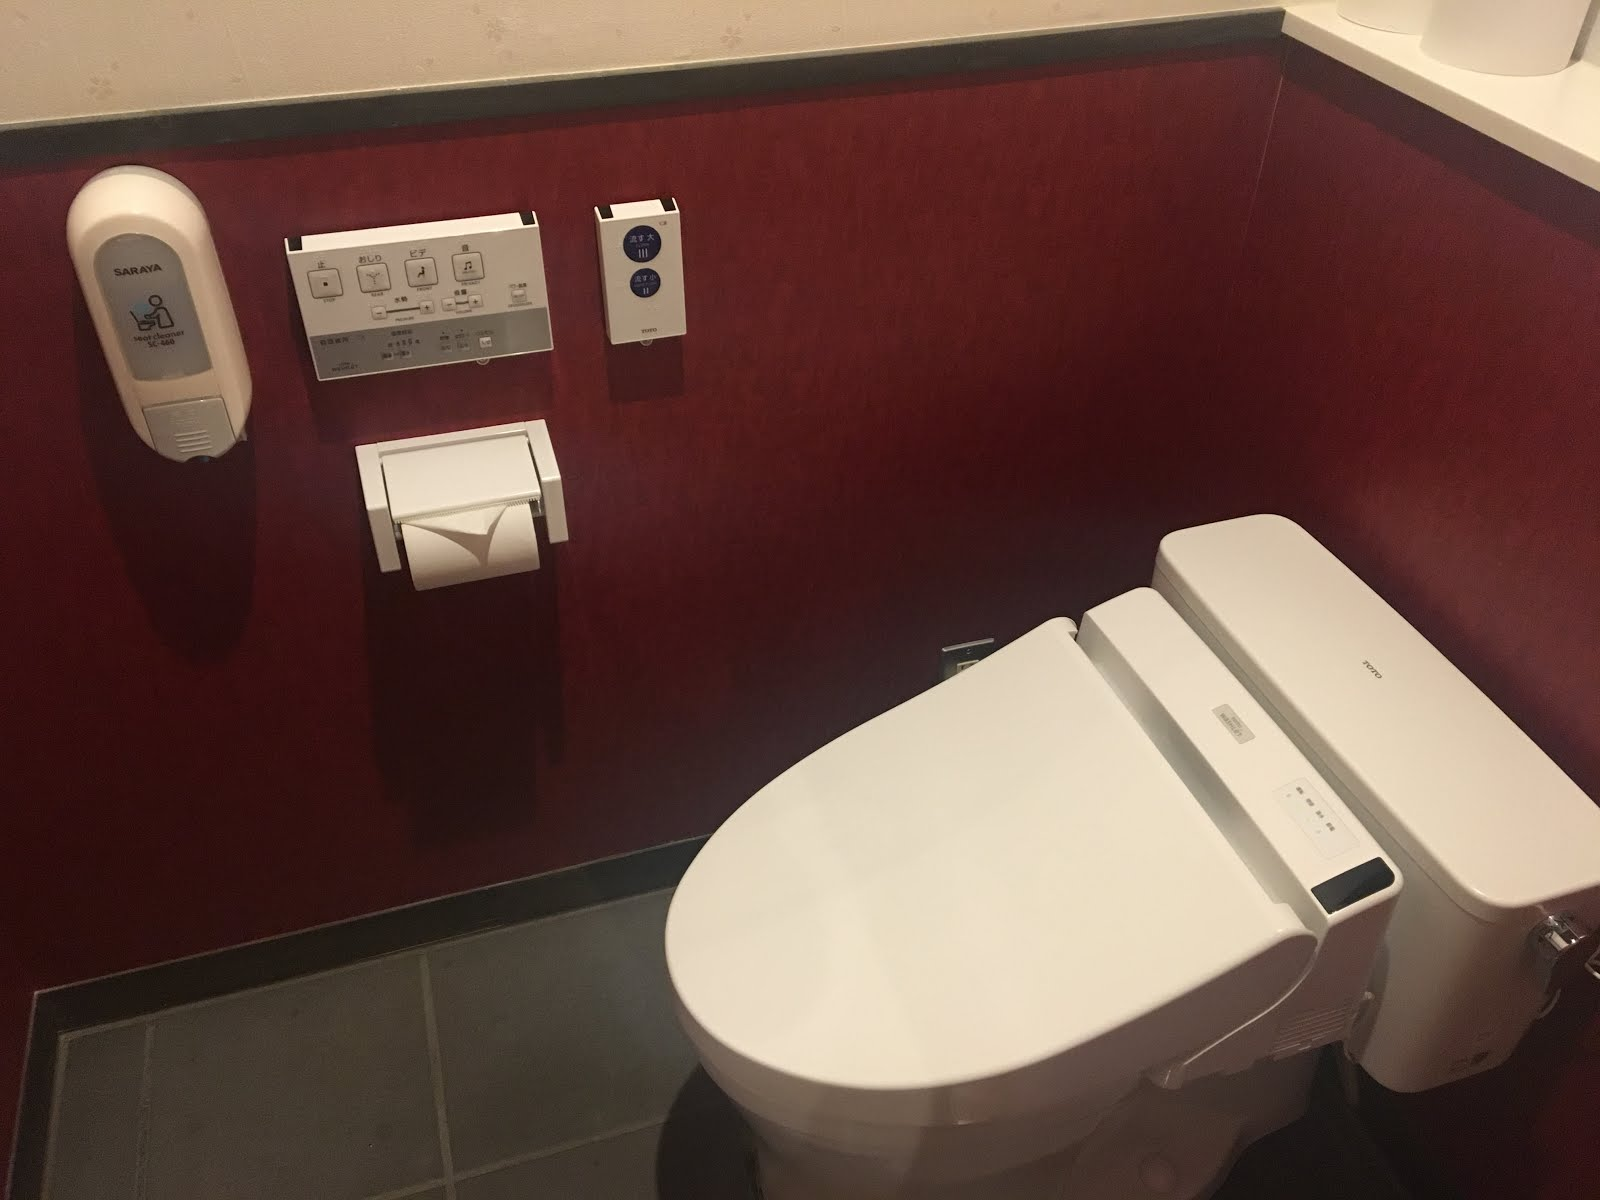 modern japanese toilet with sanitizing wipes, buttons to wash and control heat, pressure.  Also buttons to play music to drown out bathroom sounds. Super cool.